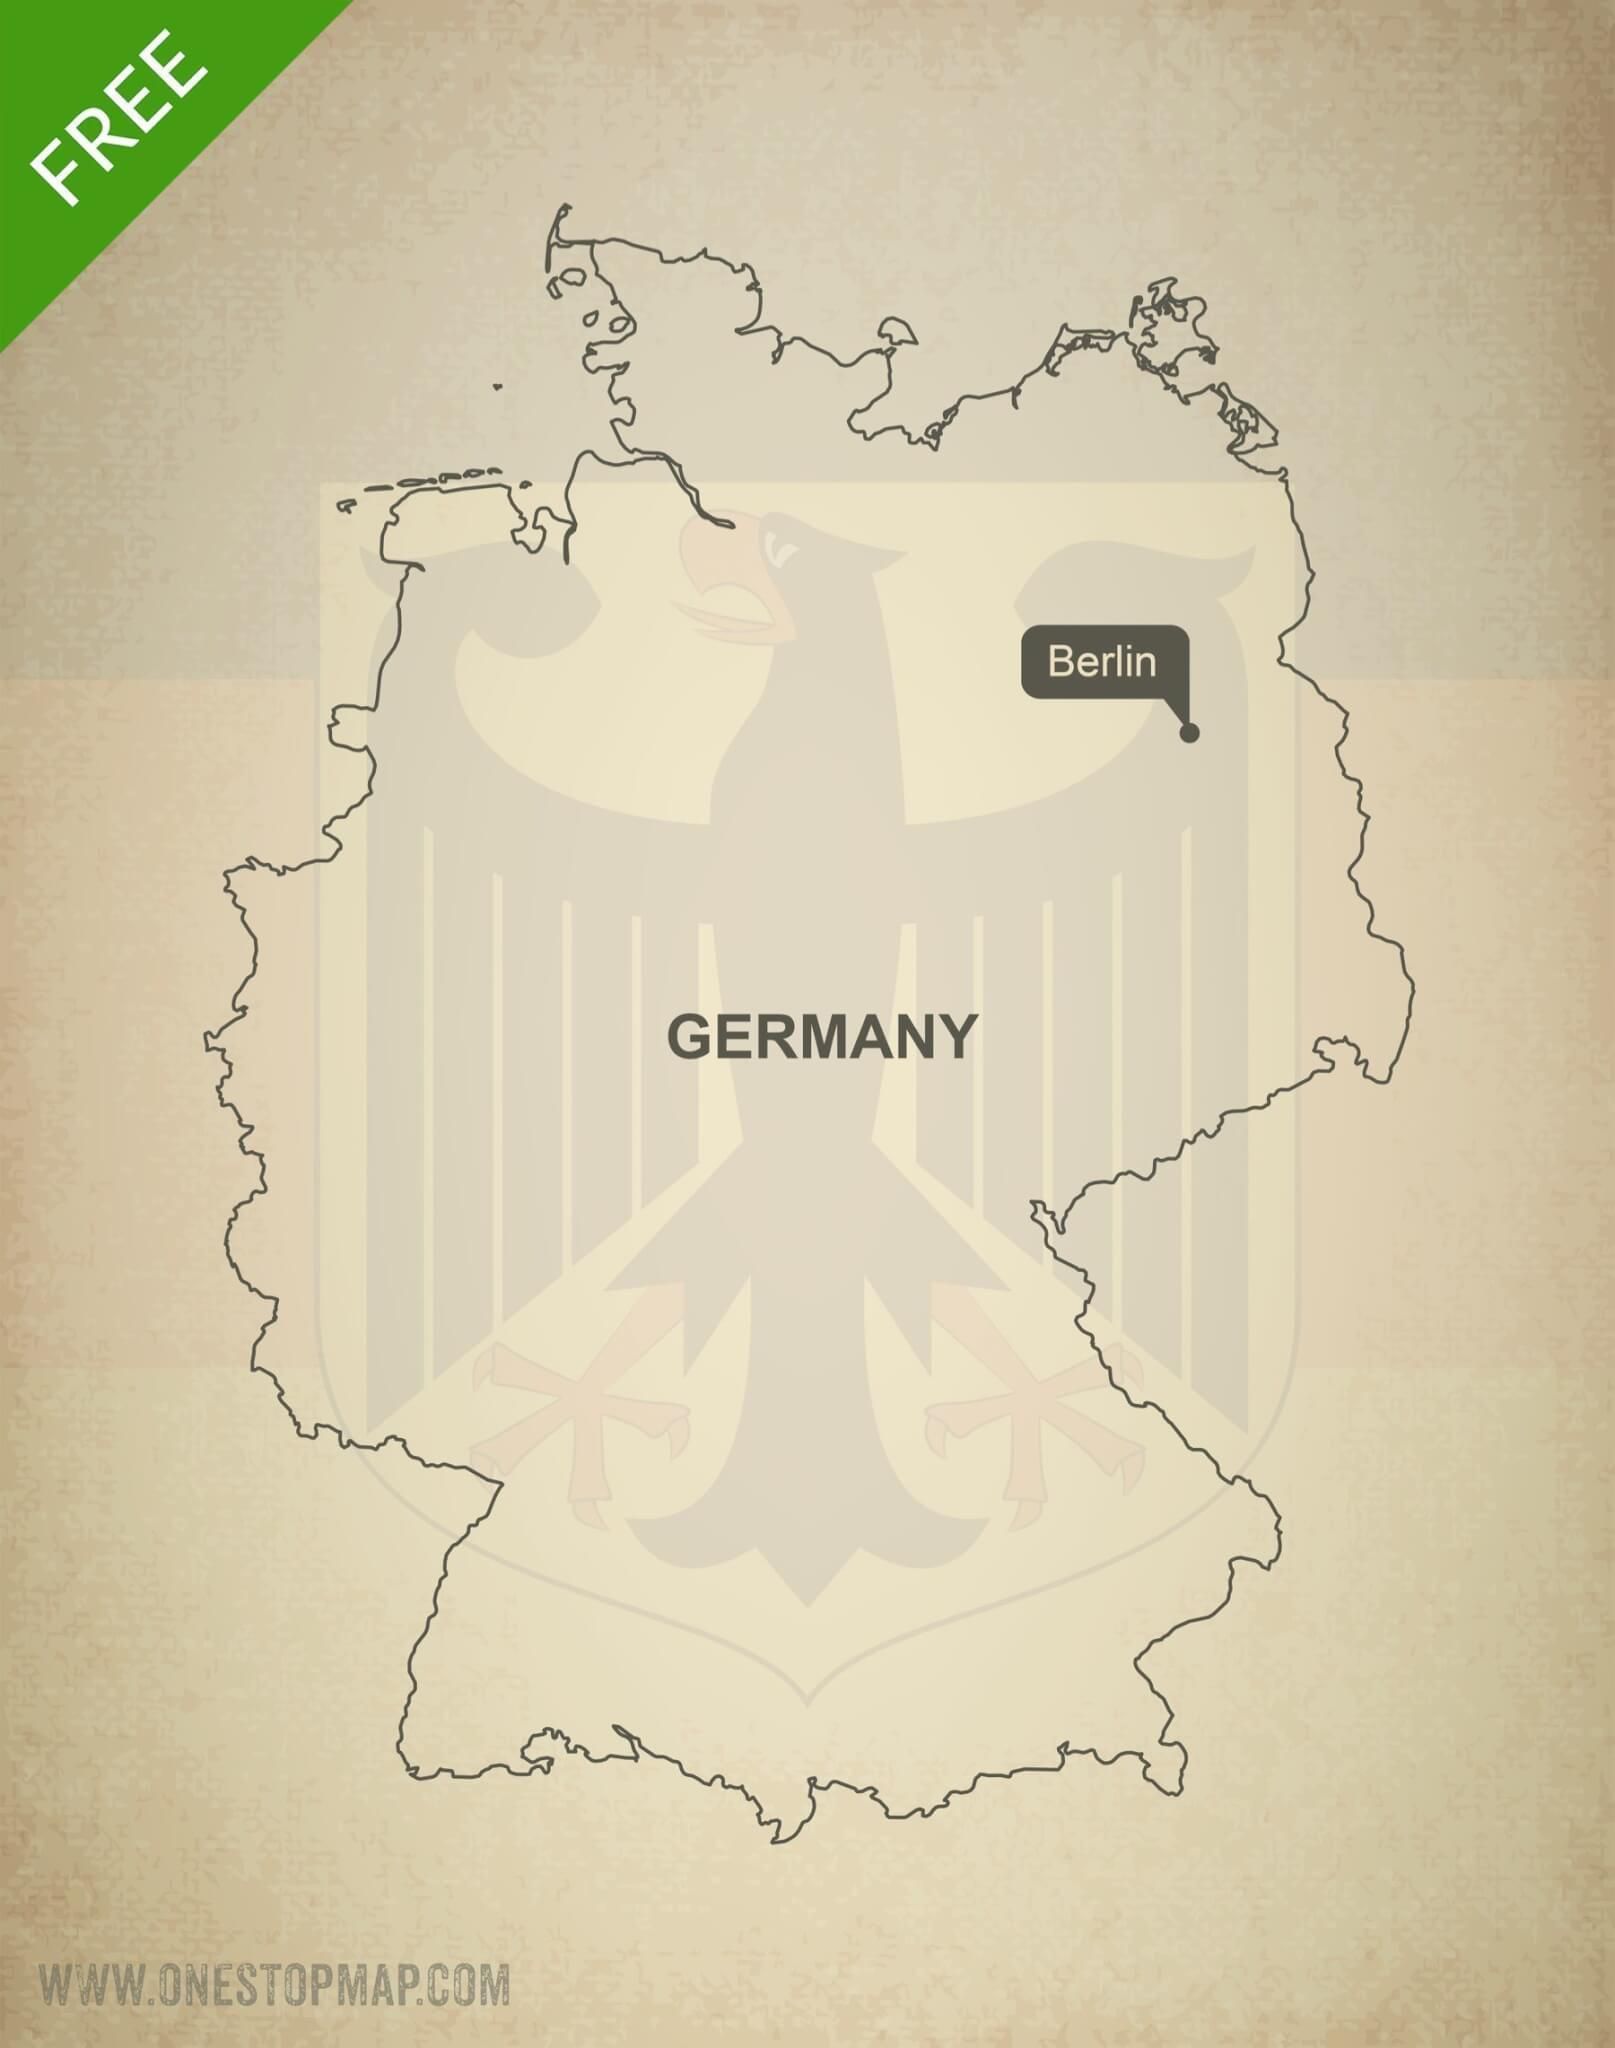 Printable Map Of Germany.Free Vector Map Of Germany Outline One Stop Map